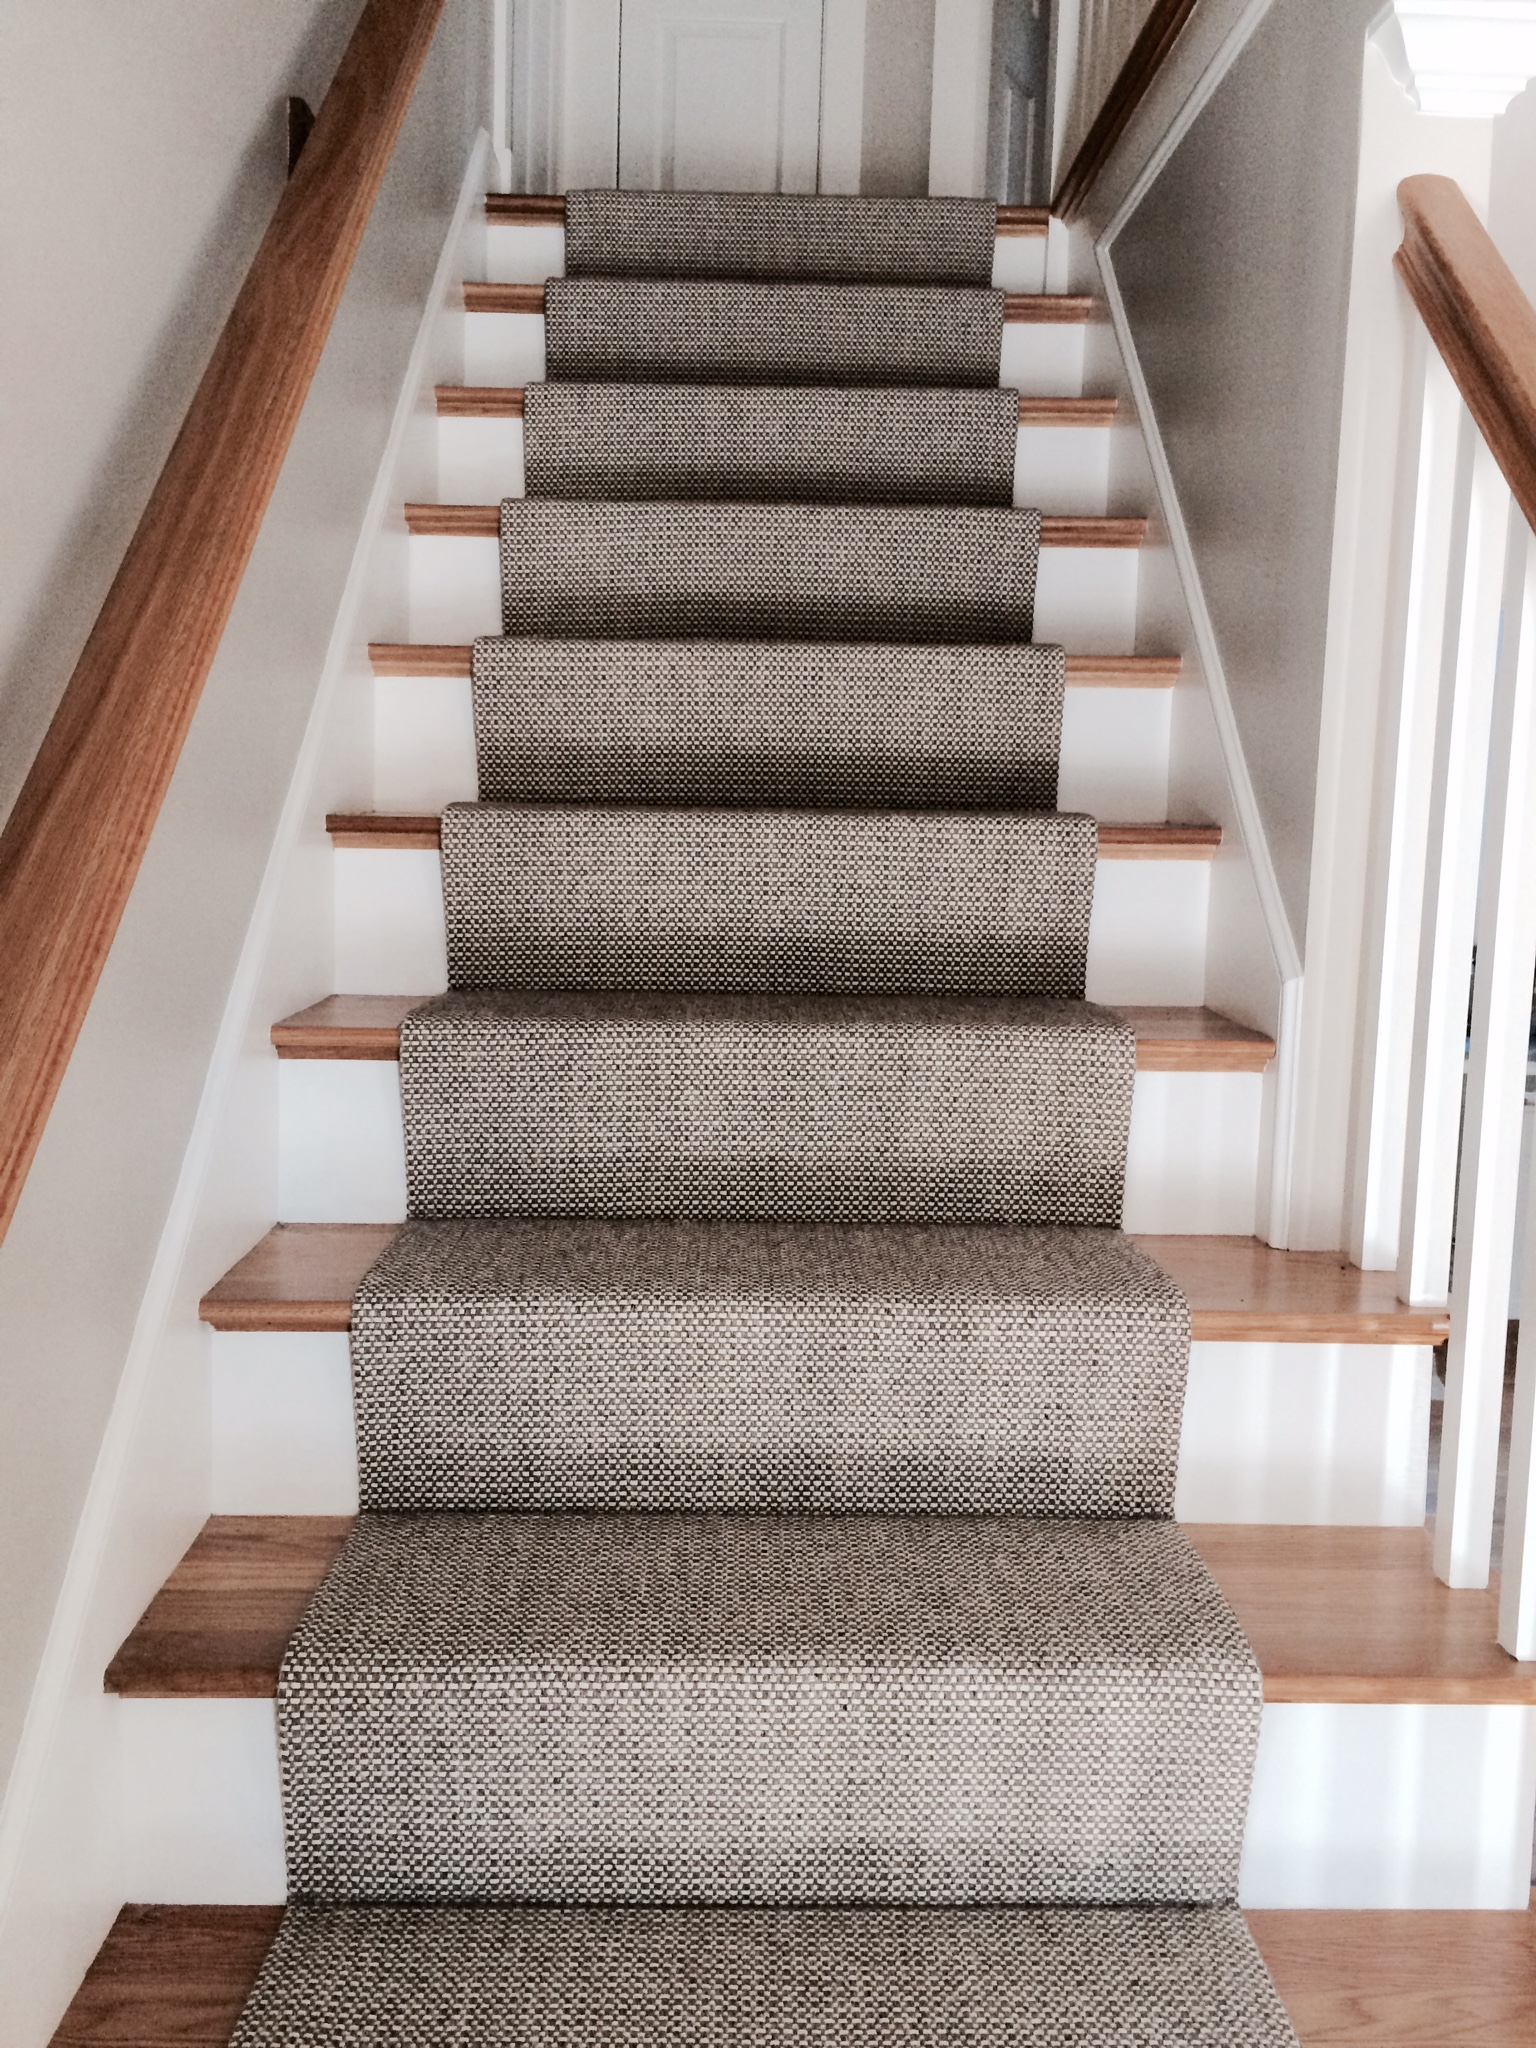 carpet for stairs carpet runners for stairs merida flat woven wool stair runner by the carpet SJTNPBG